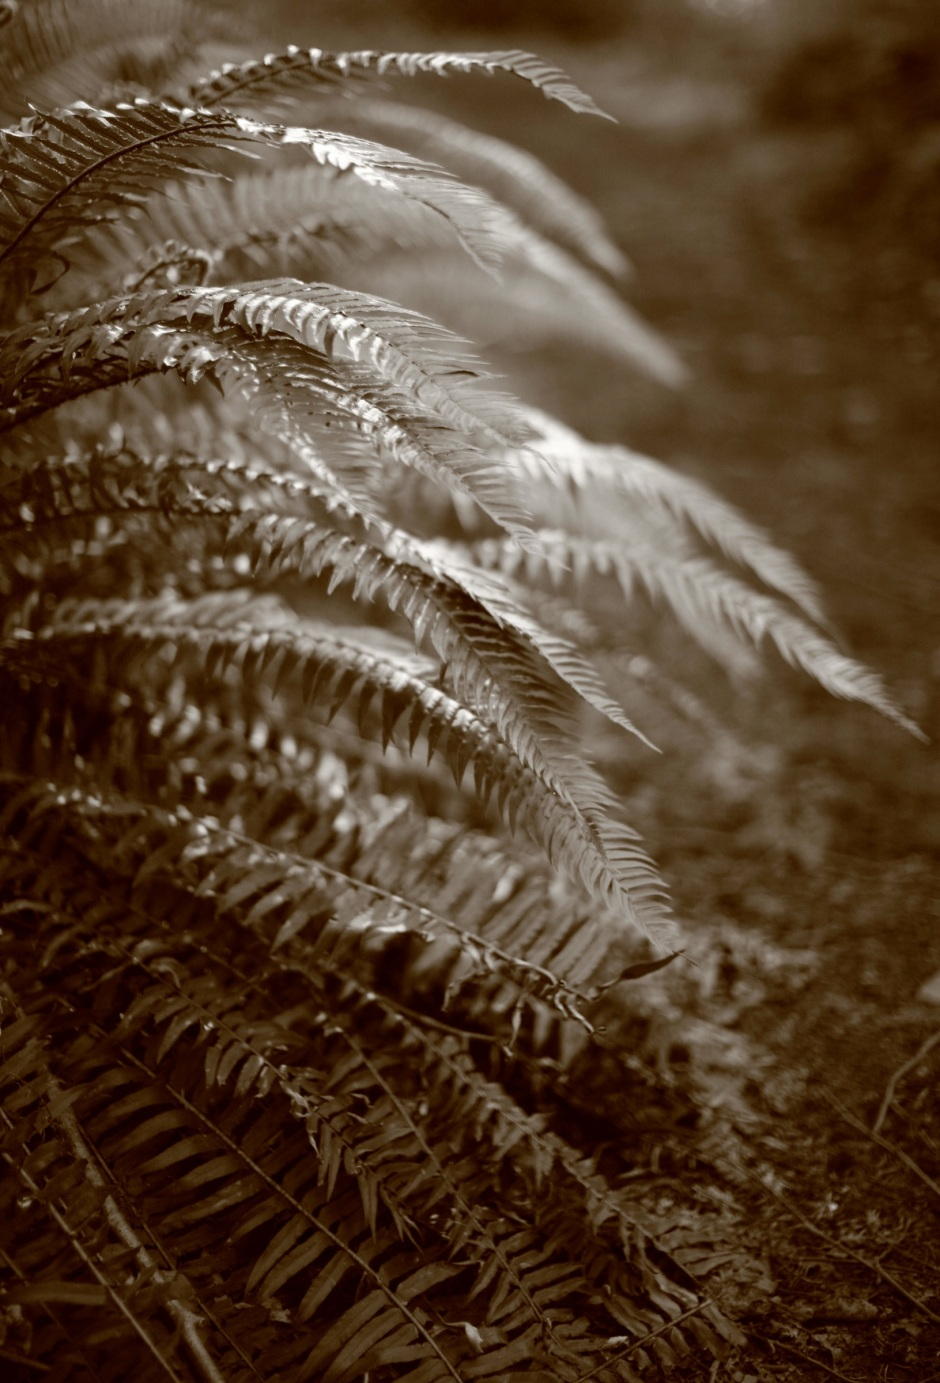 Sword fern waterfall © 2010 Kevin Horan